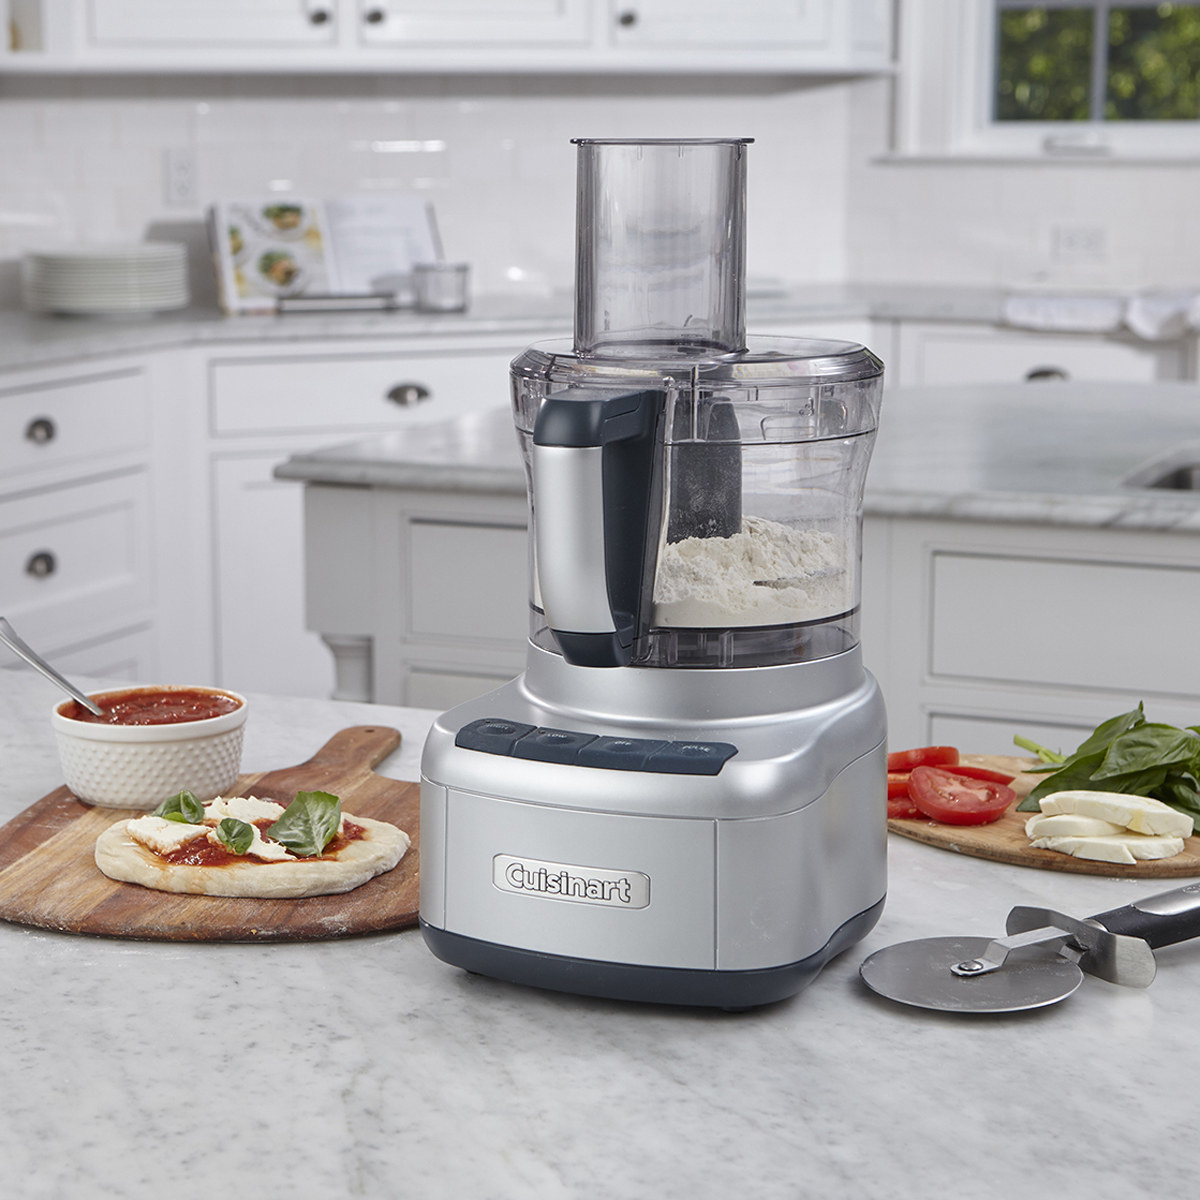 Check Out Some Of The Magic A Food Processor Can Add To Your Kitchen Here.